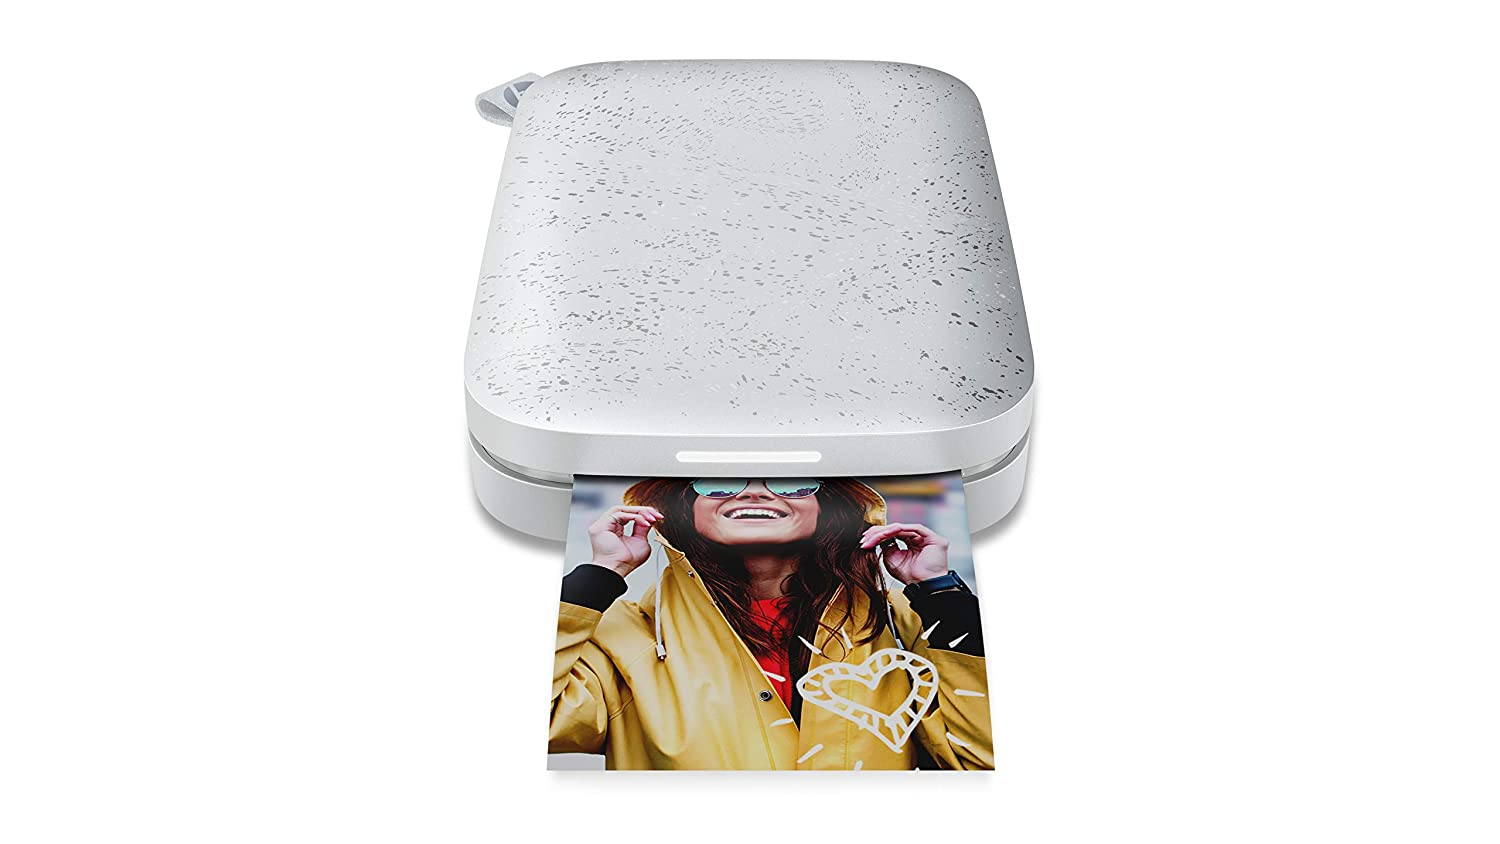 HP Sprocket Portable Photo Printer (2nd Edition) – Instantly Print 2x3 Sticky-Backed Photos from Your Phone – [Luna Pearl] [1AS85A] Hewlett Packard Inkjet Printers 1AS85A#B1H